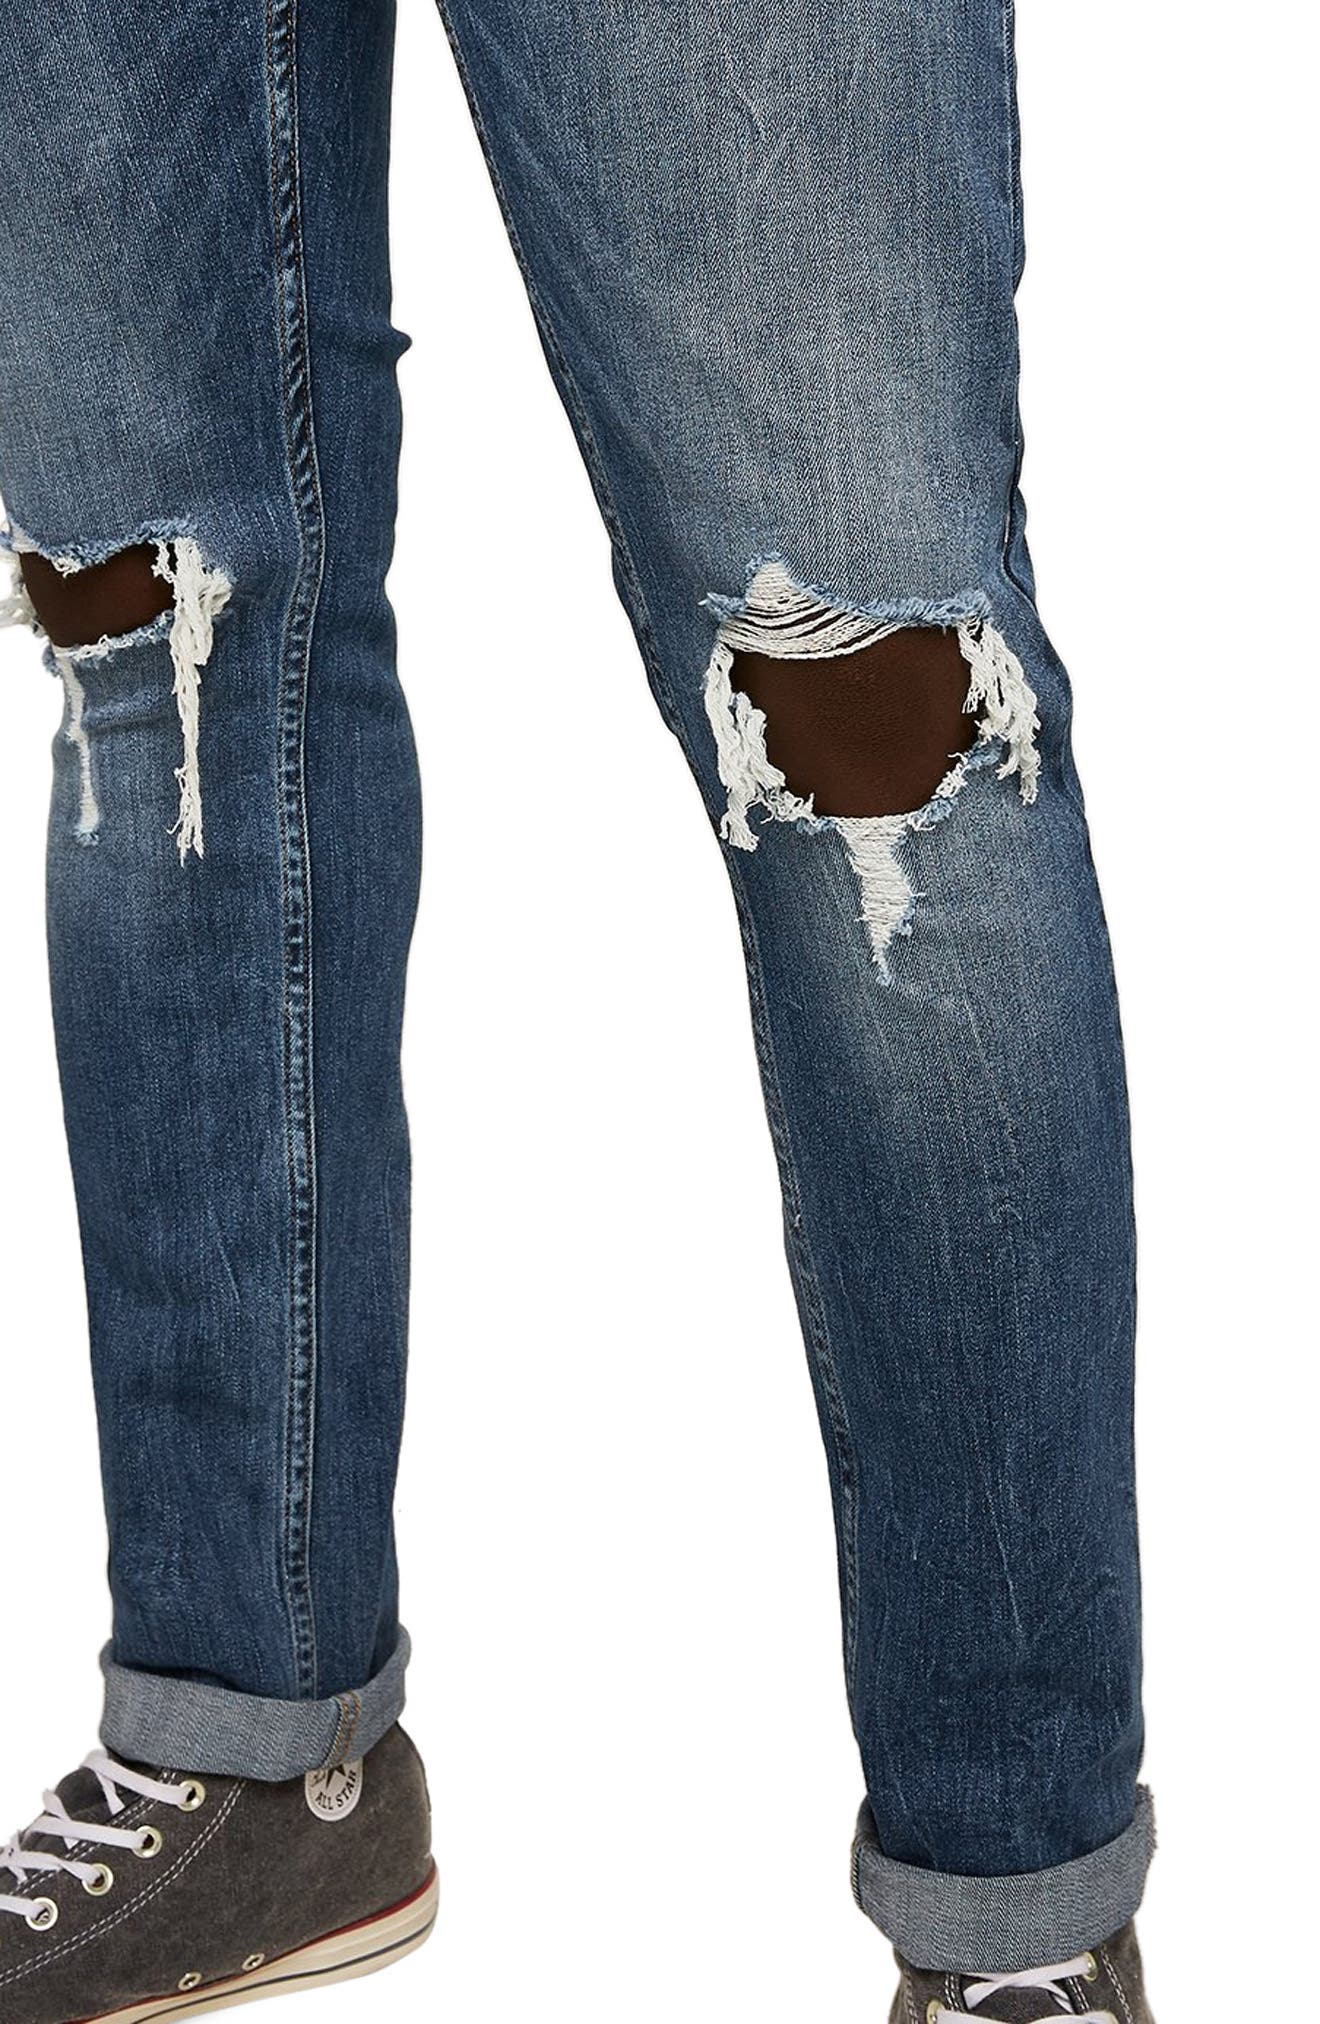 TOPMAN, Polly Ripped Stretch Skinny Jeans, Alternate thumbnail 4, color, BLUE